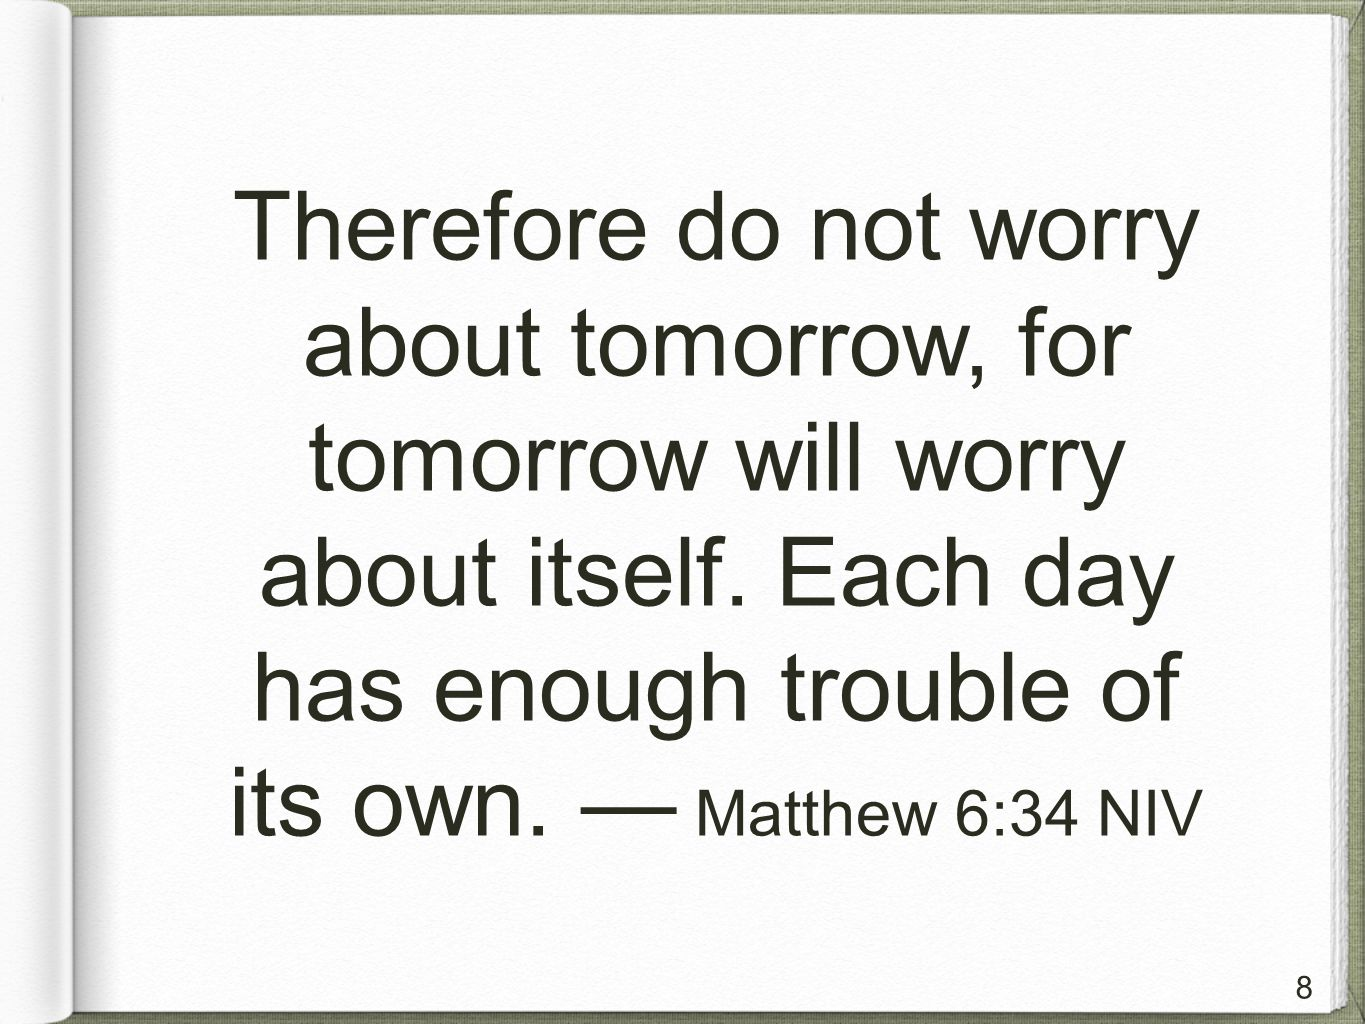 29 Worry is blind, and cannot discern the future; but Jesus sees the end from the beginning.